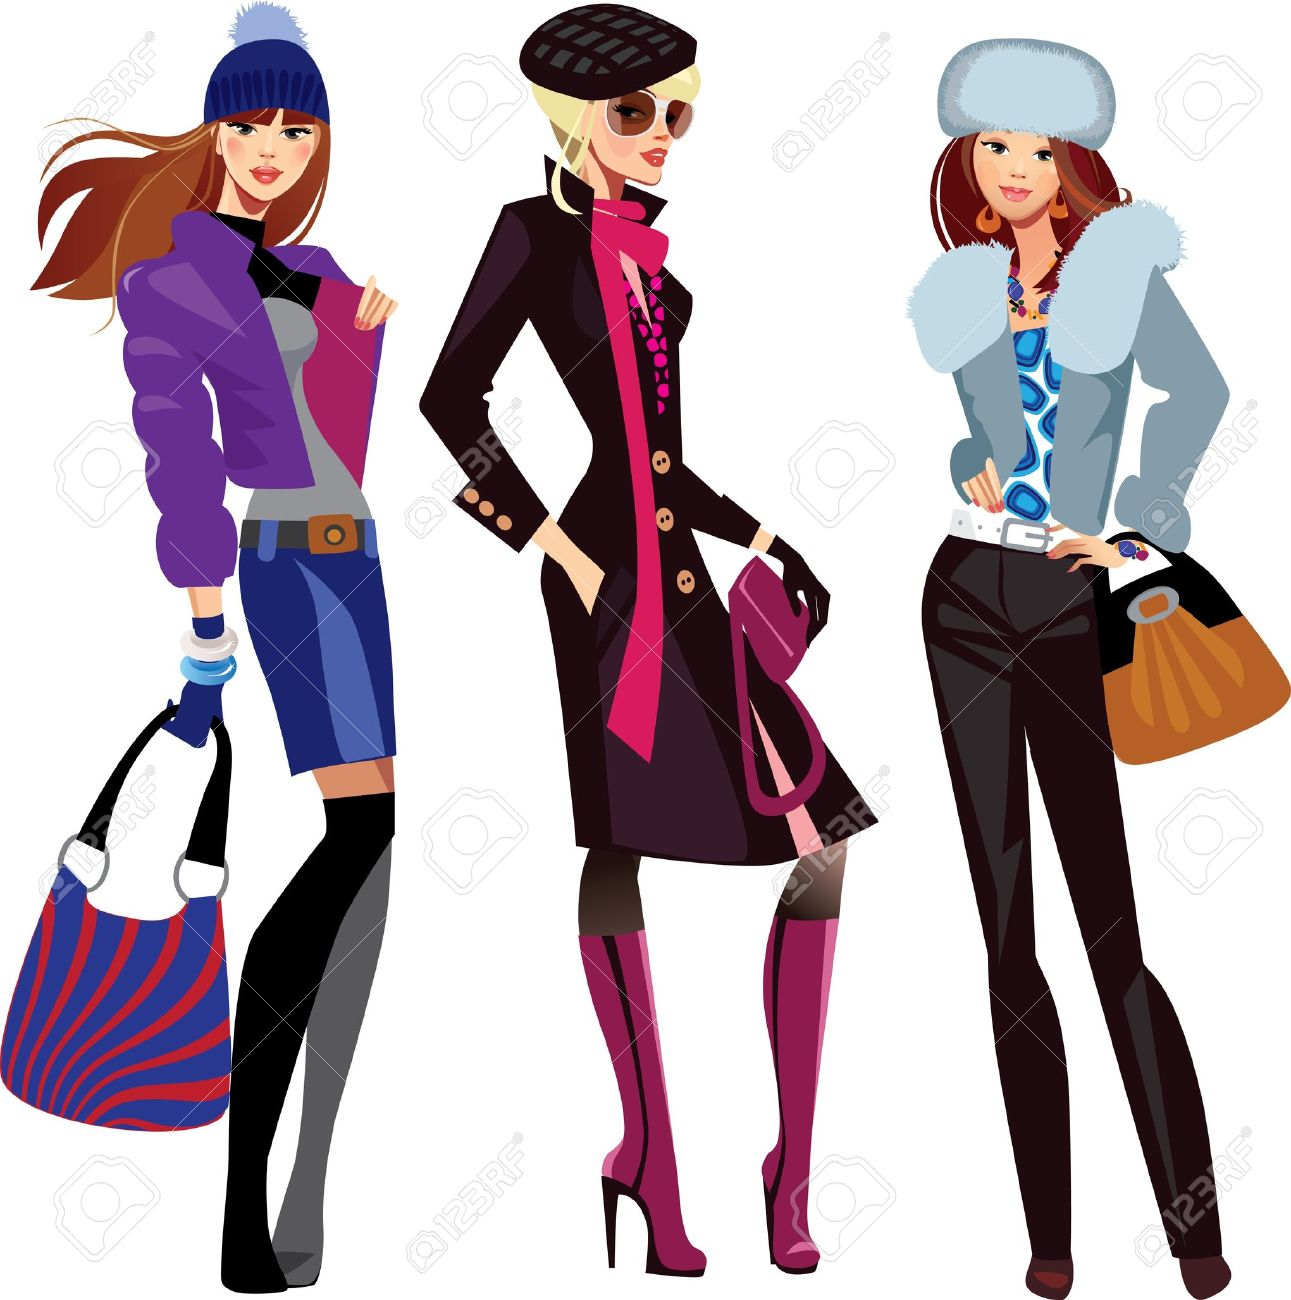 Fashion For Women Clip Art - Fashion women in winter clothes stock vector 13033849